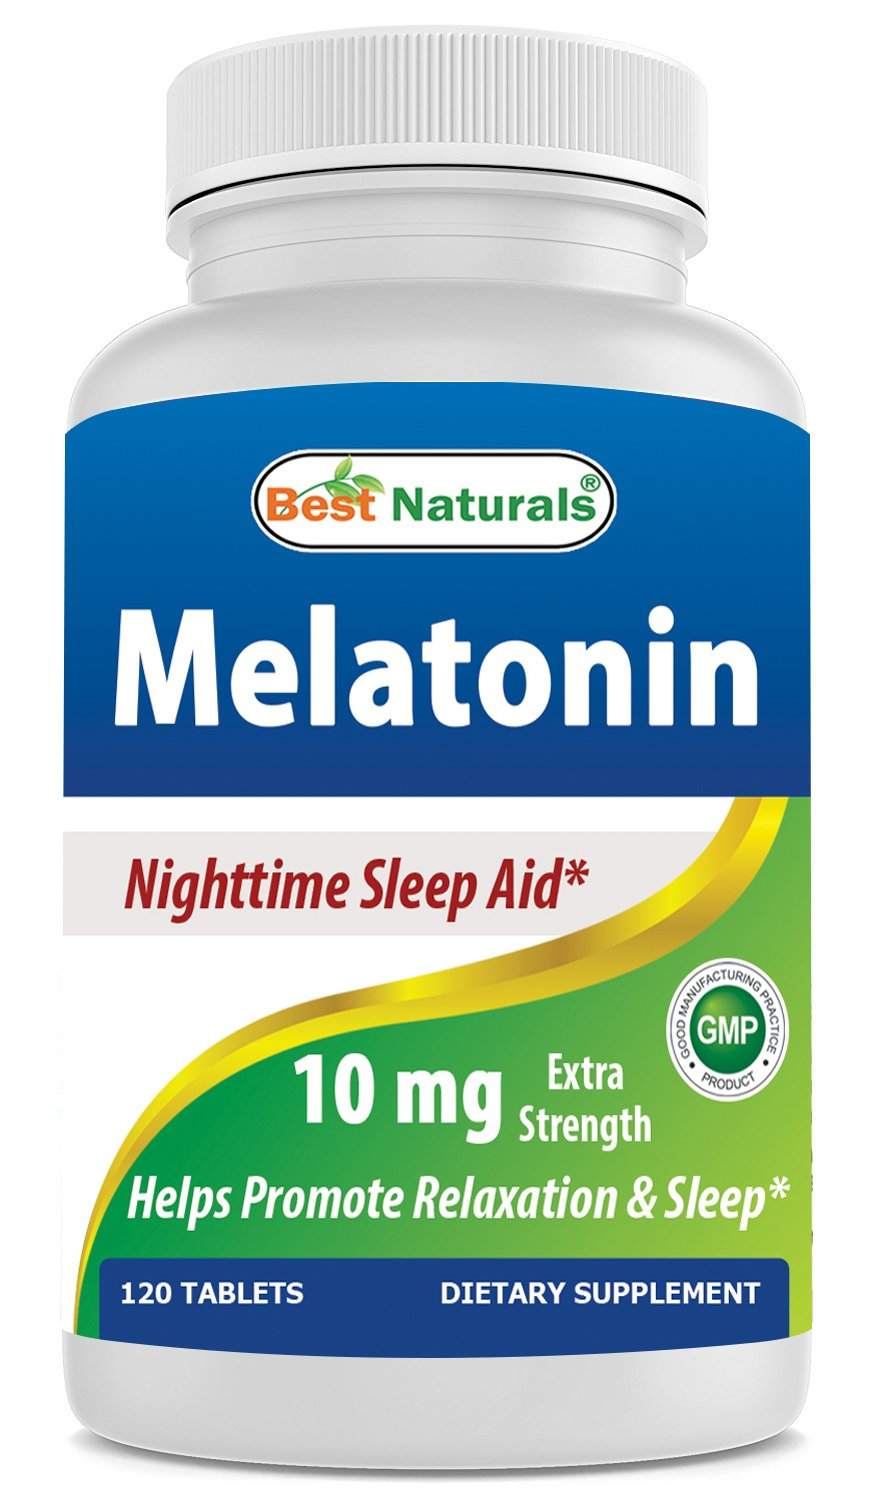 Amazon.com: Best Naturals Melatonin 1 mg 240 tablets: Health ...